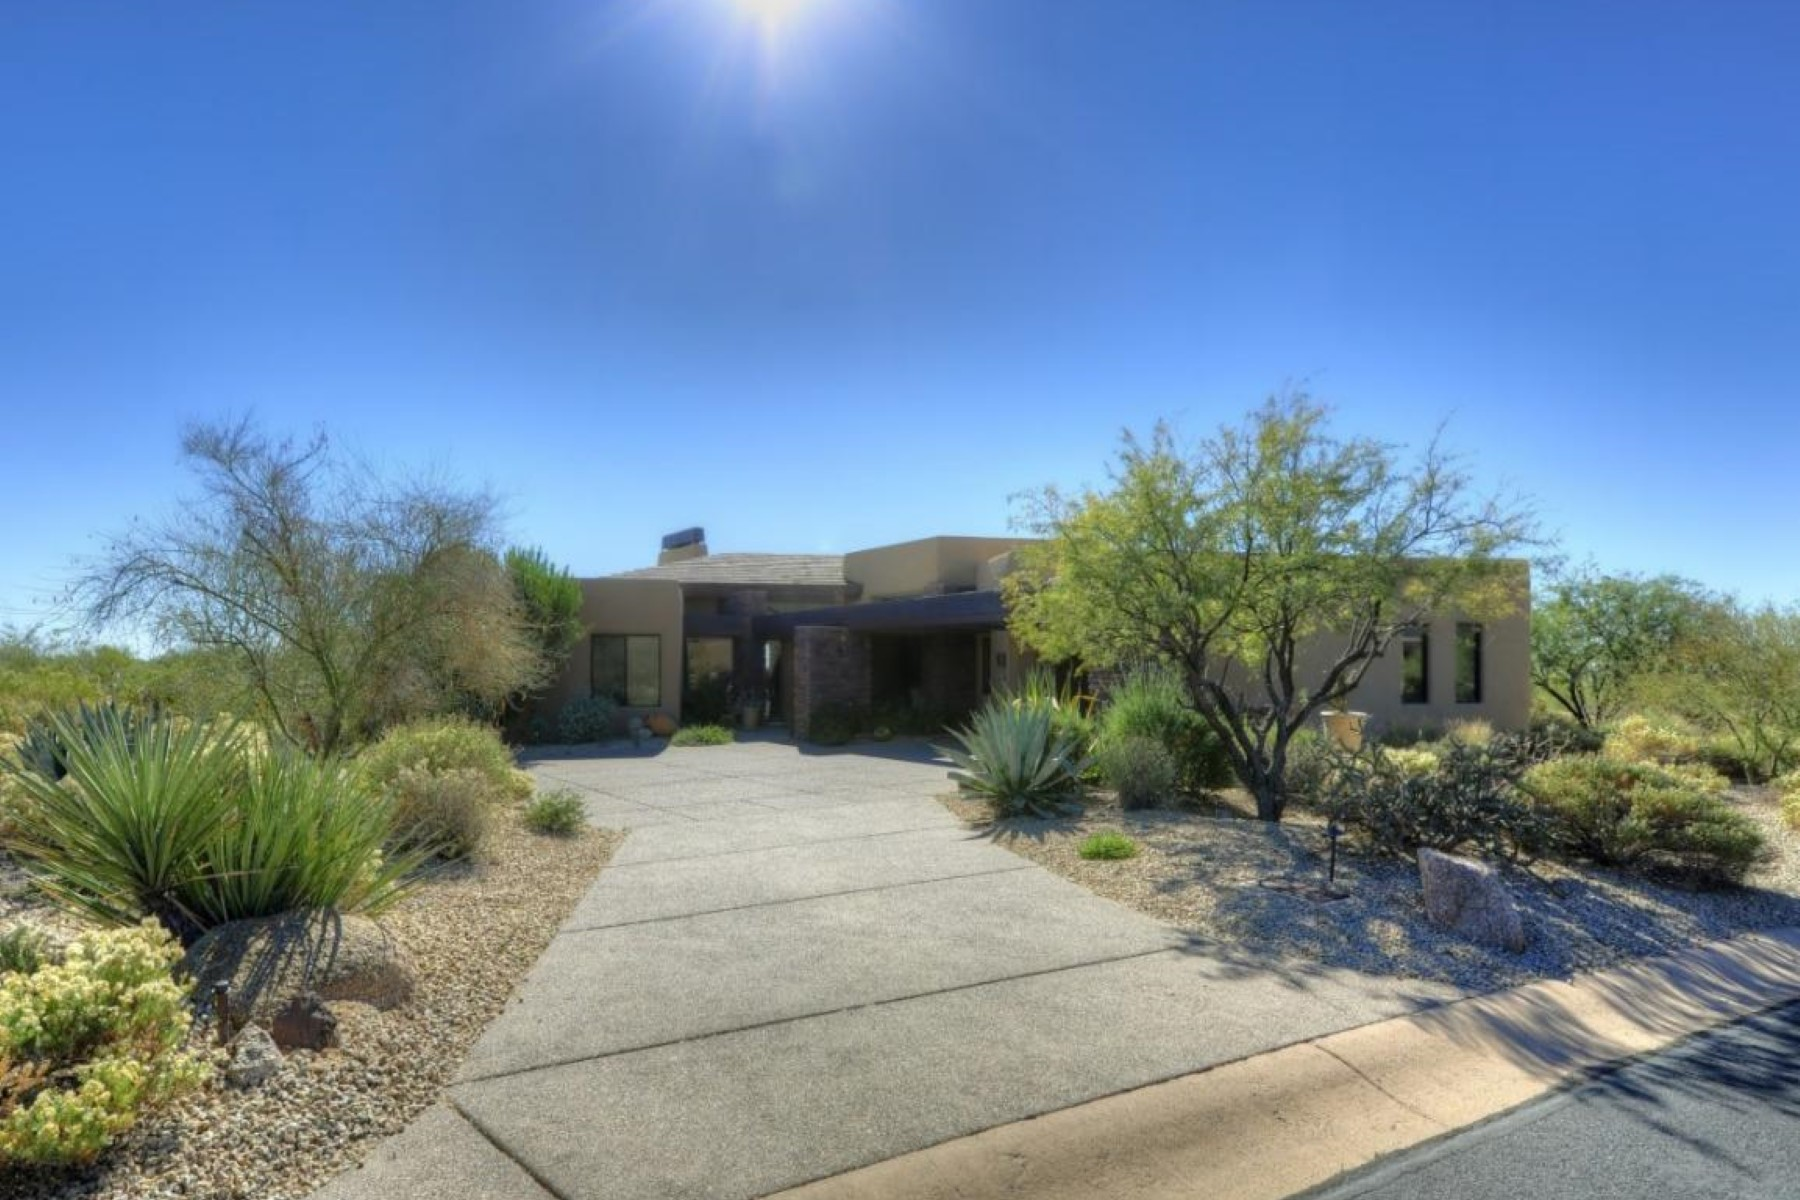 一戸建て のために 売買 アット Fabulous bright and open home that has been meticulously maintained 10277 E Nolina Trail Scottsdale, アリゾナ 85262 アメリカ合衆国